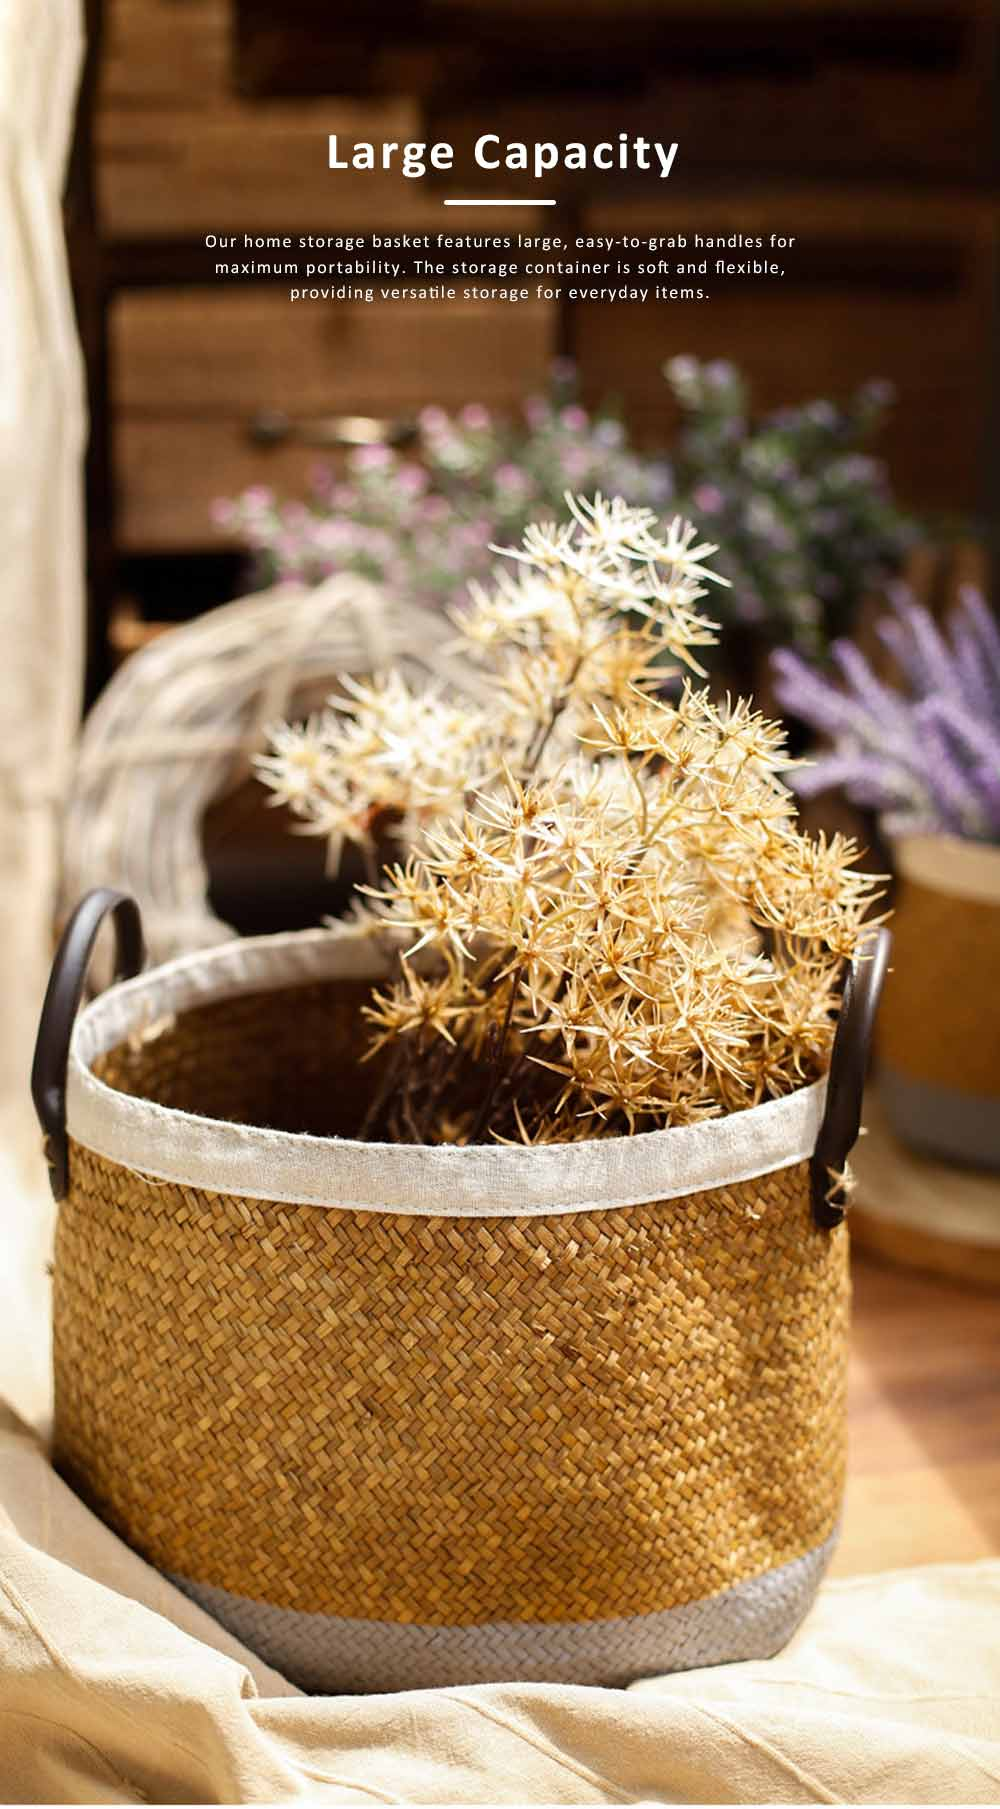 Handmade Woven Basket Large Capacity Home Toys Storage Bag Shopping Bag Fashion Home Flower Basket Decor with Leather Handle 4